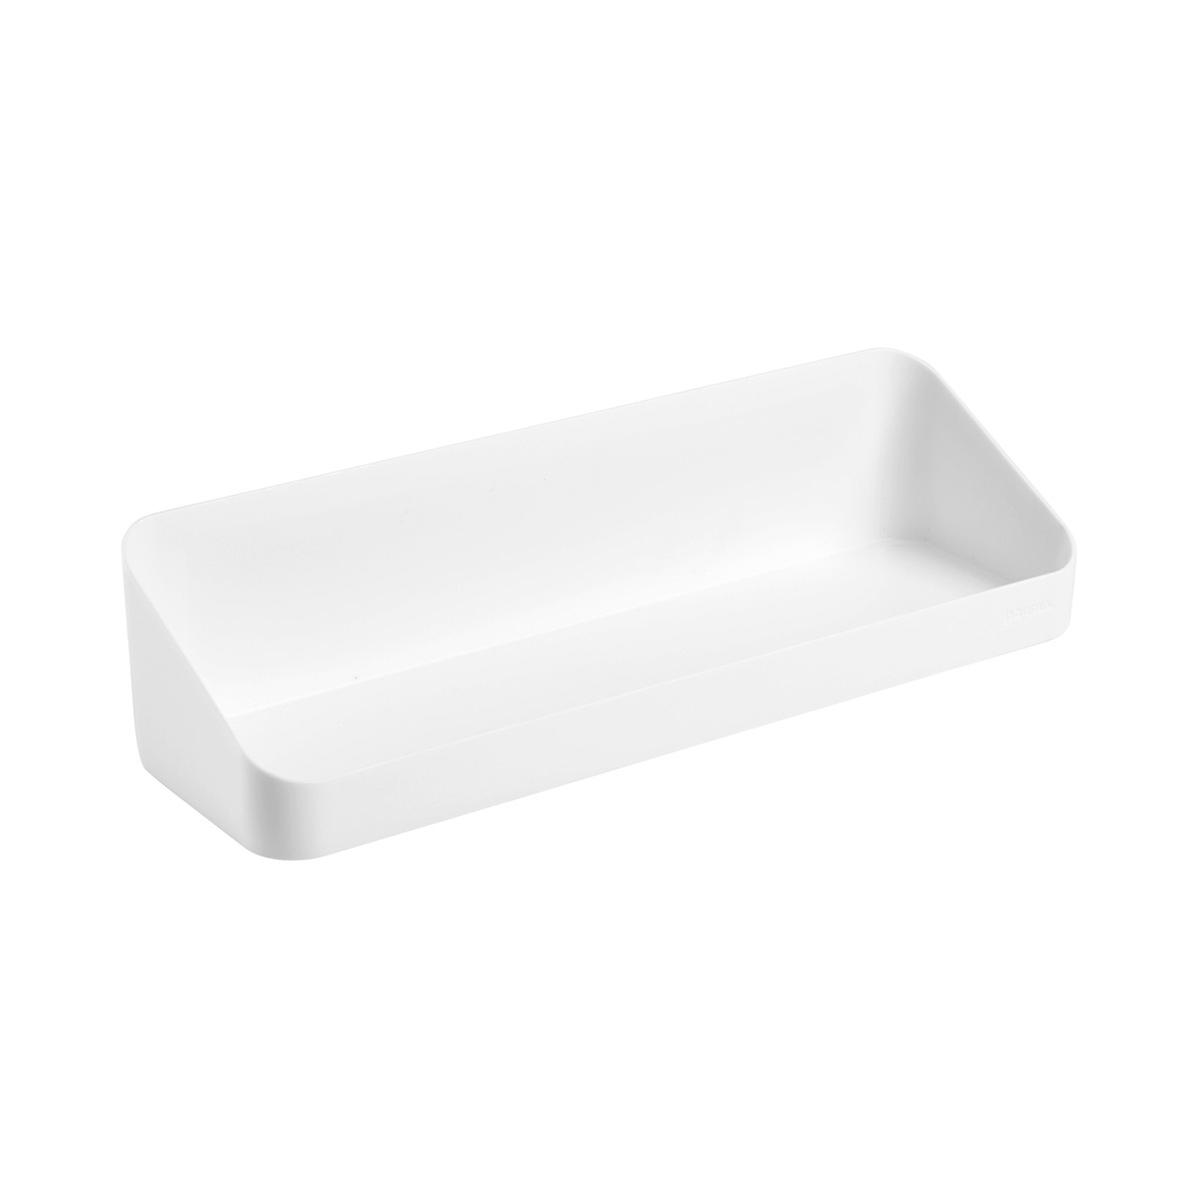 White Poppin Magnetic Wall Shelf